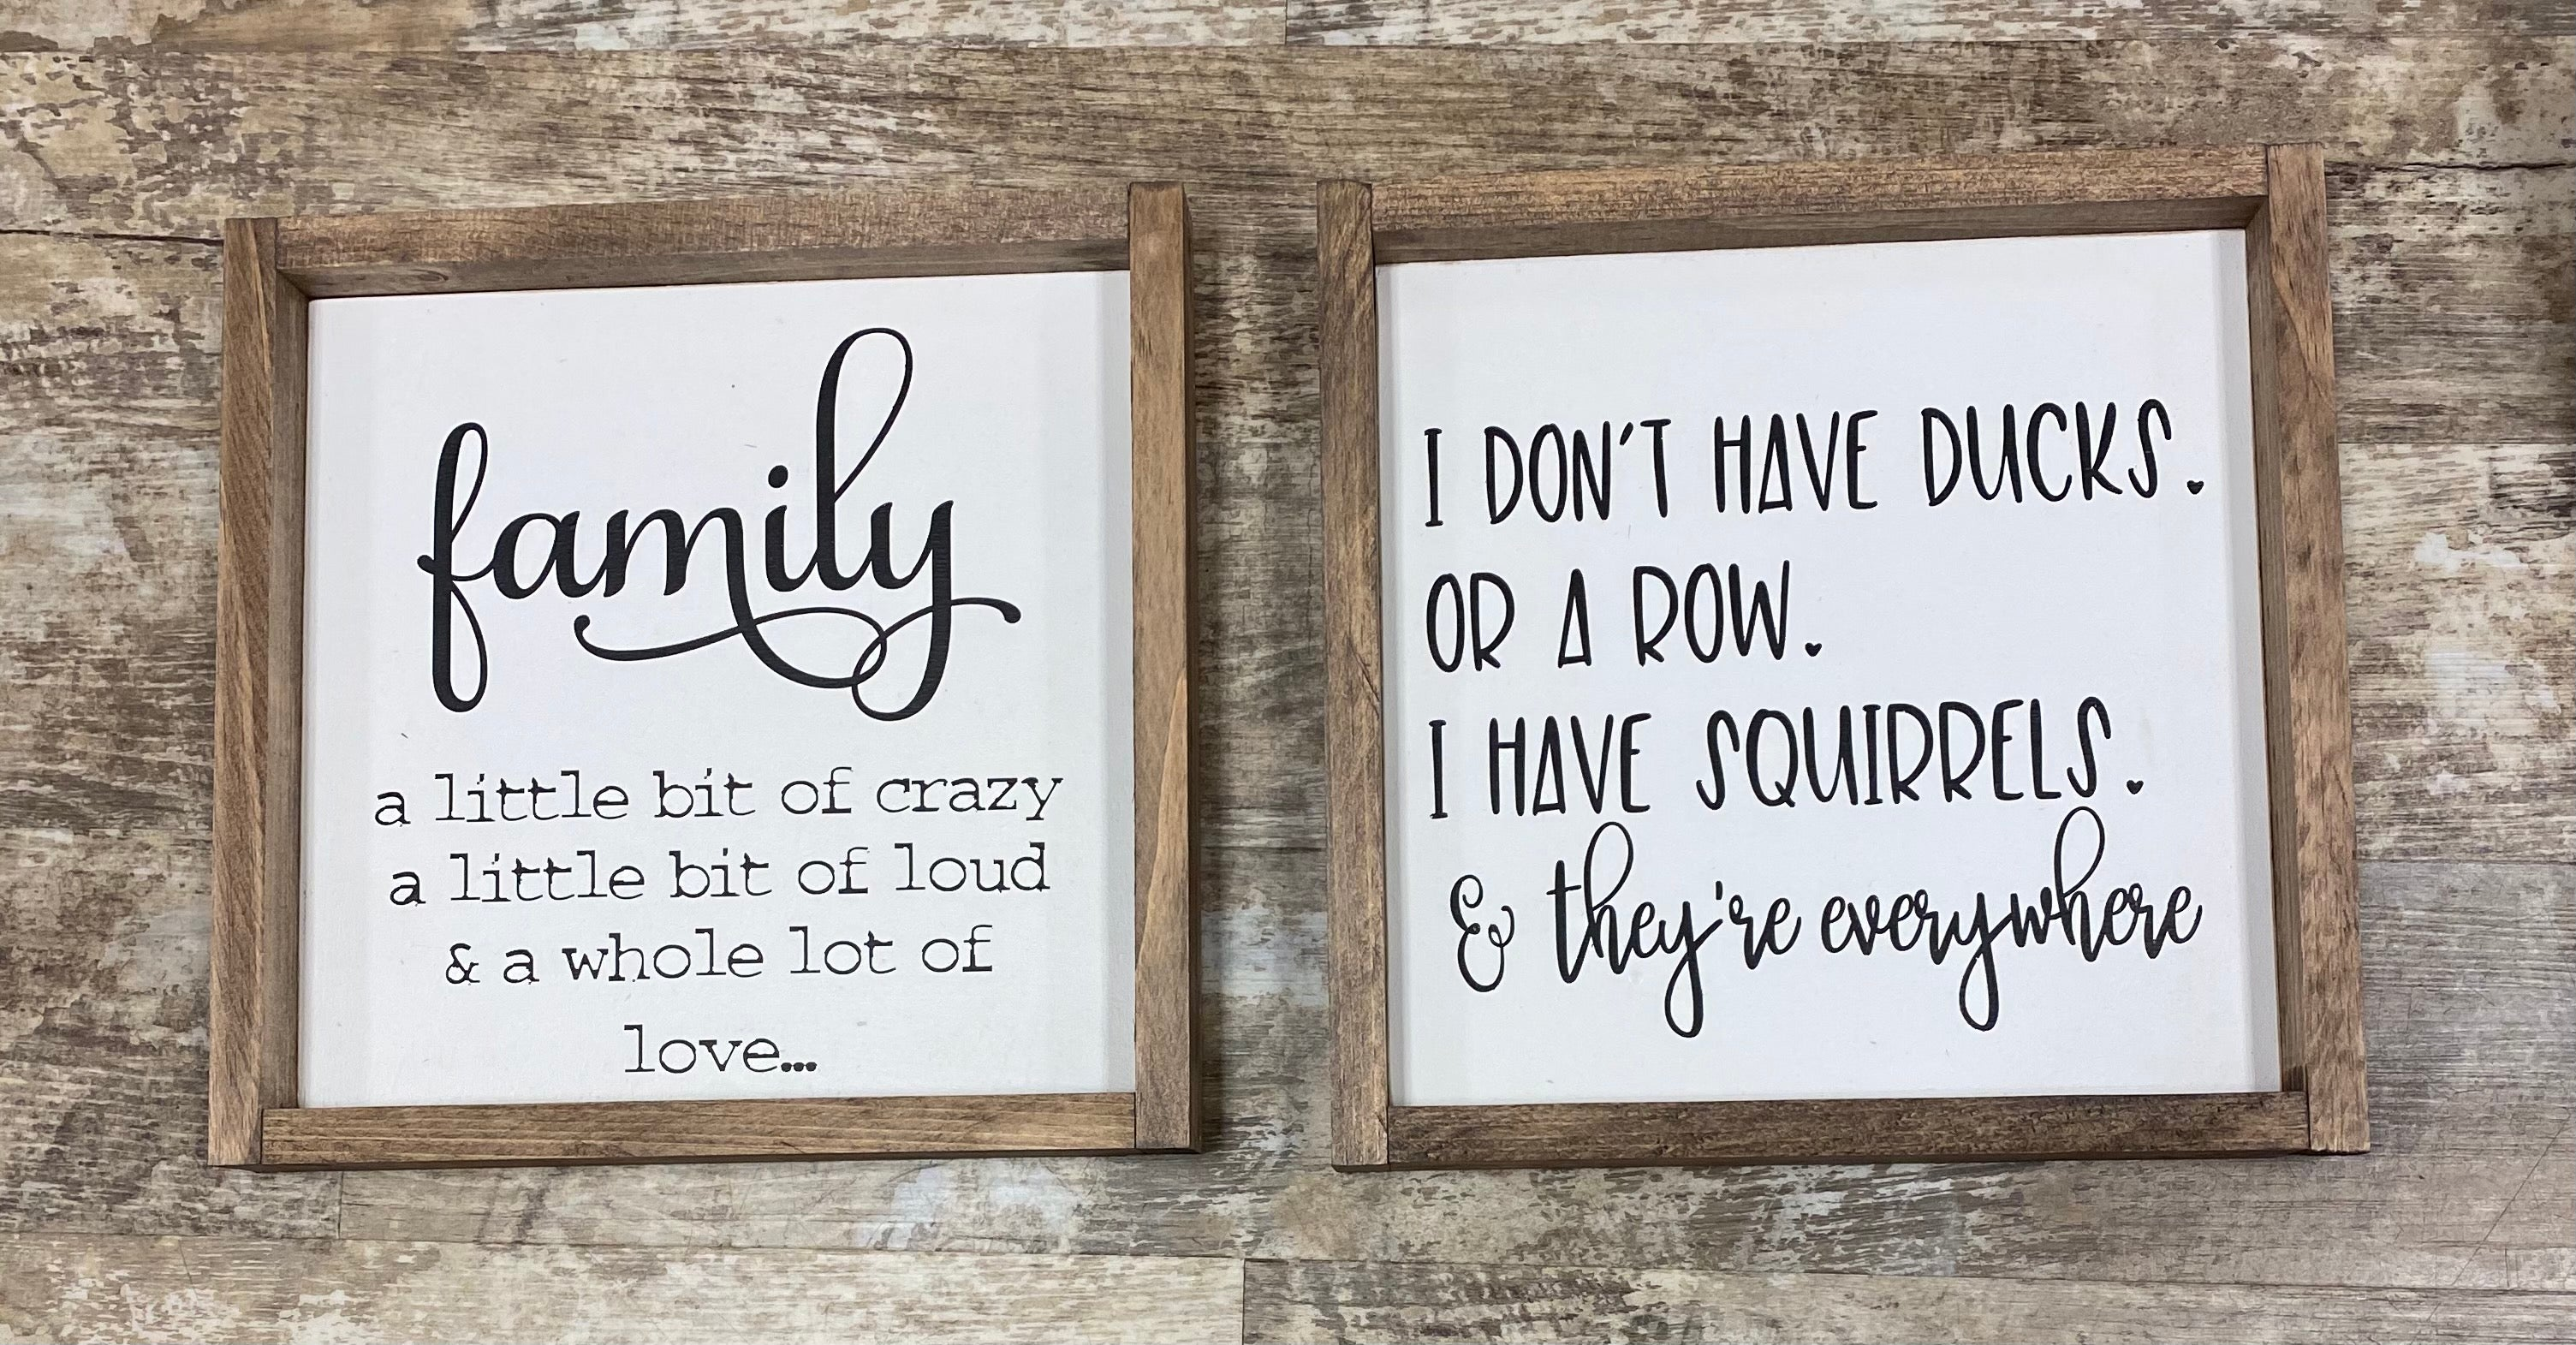 12x12 Wooden Framed Sign